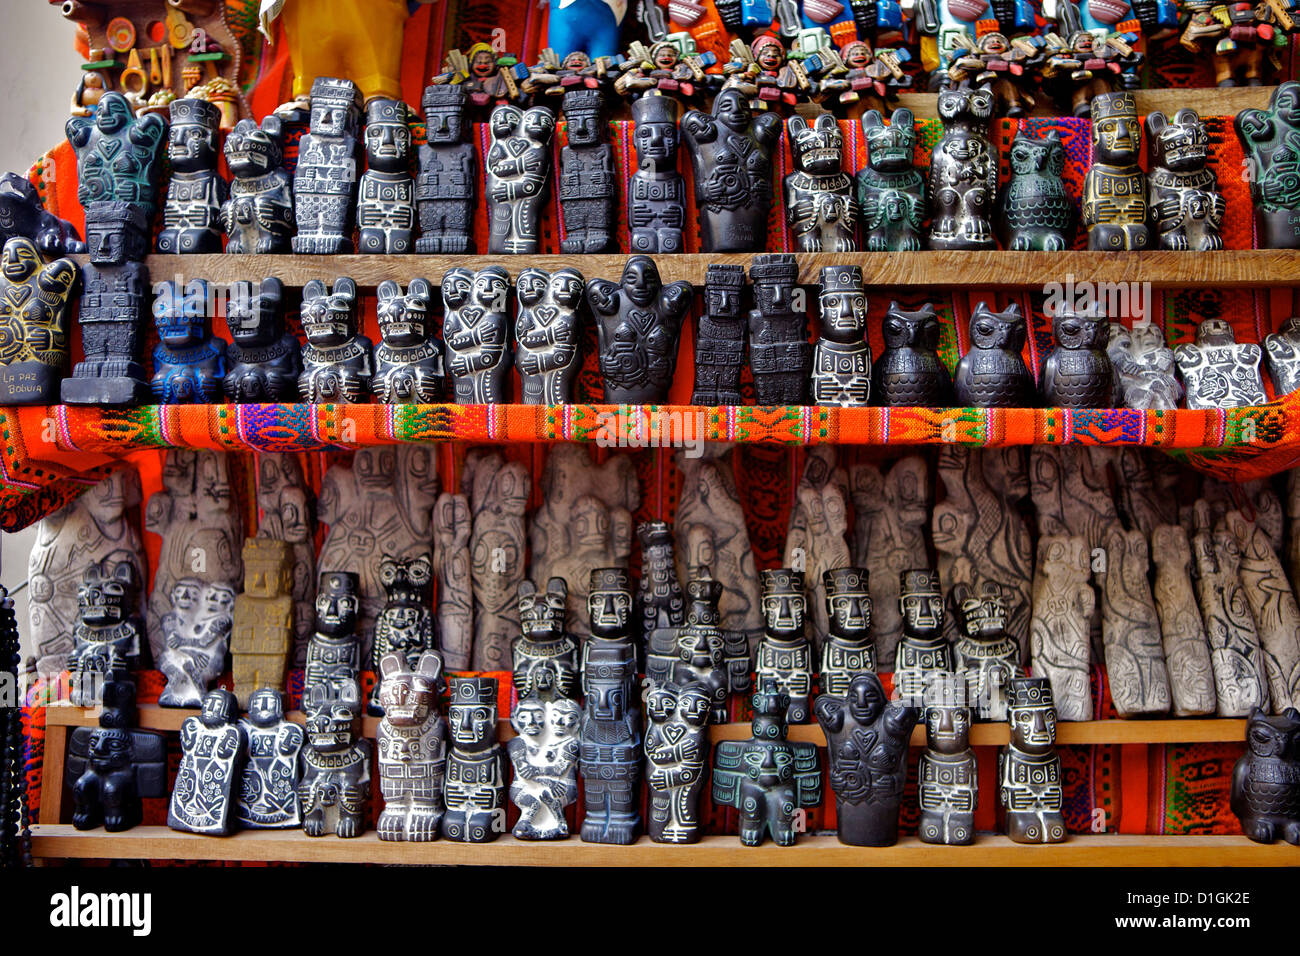 Ceremonial statues for sale in Witches Market, La Paz, Bolivia, South America - Stock Image